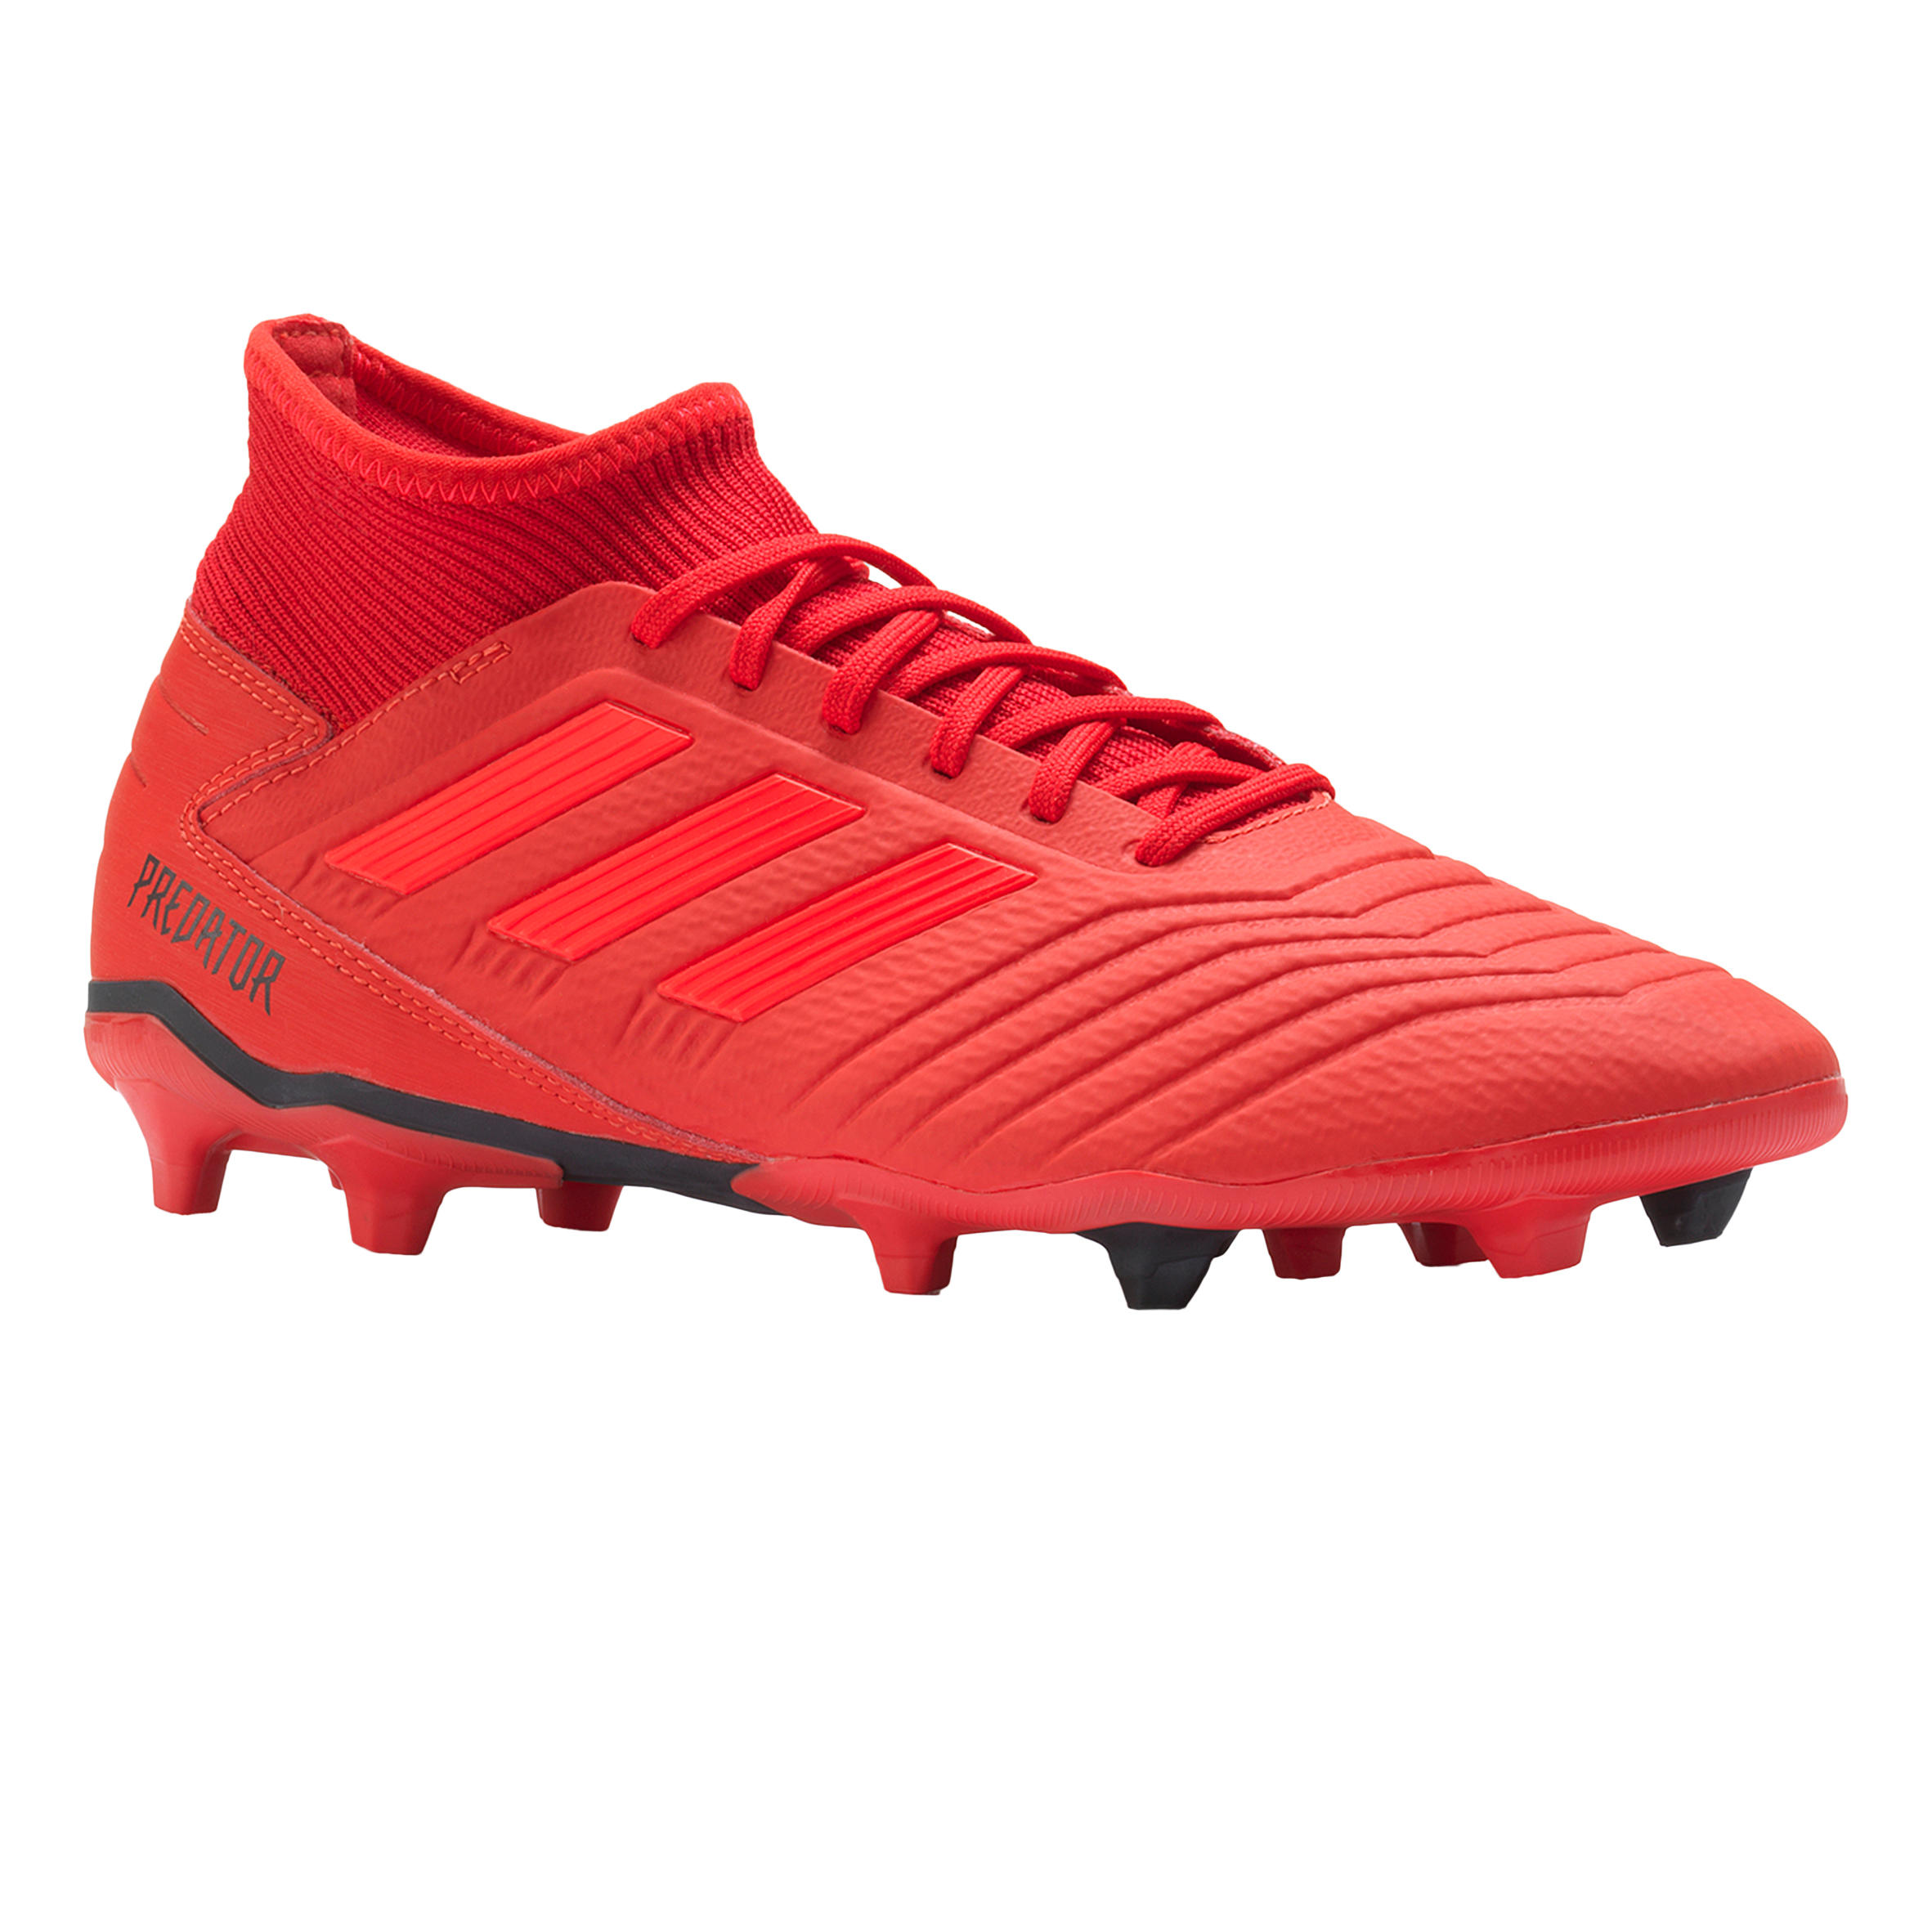 adidas red football shoes